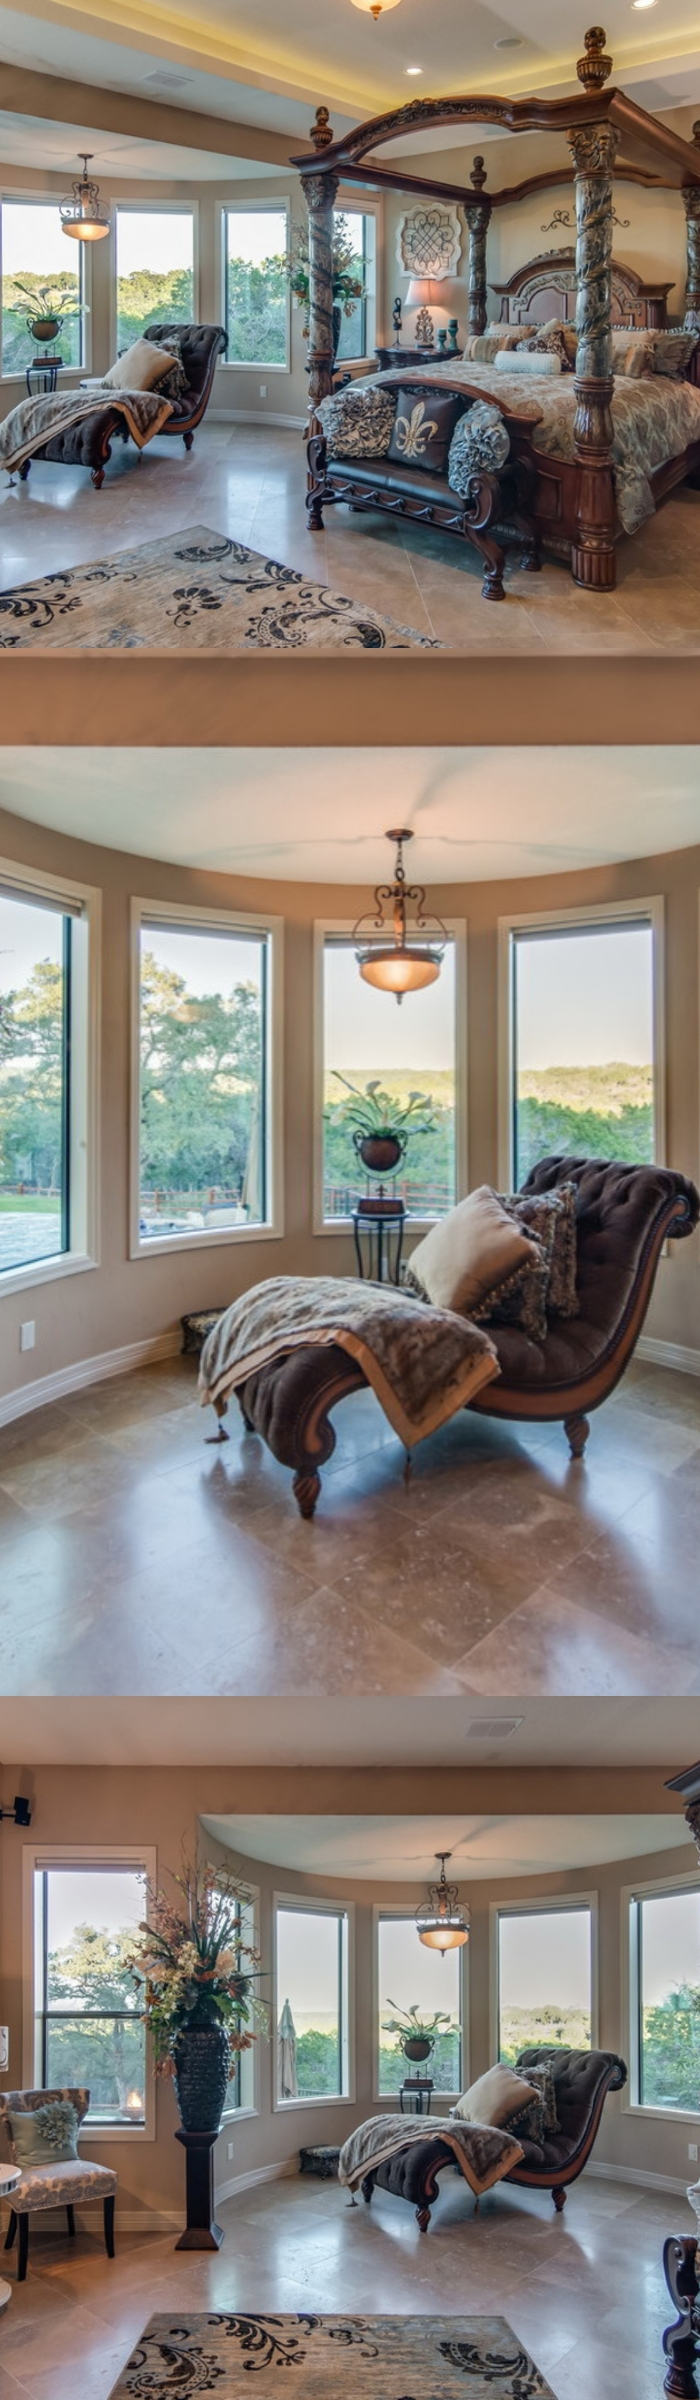 Bay Window Bedroom